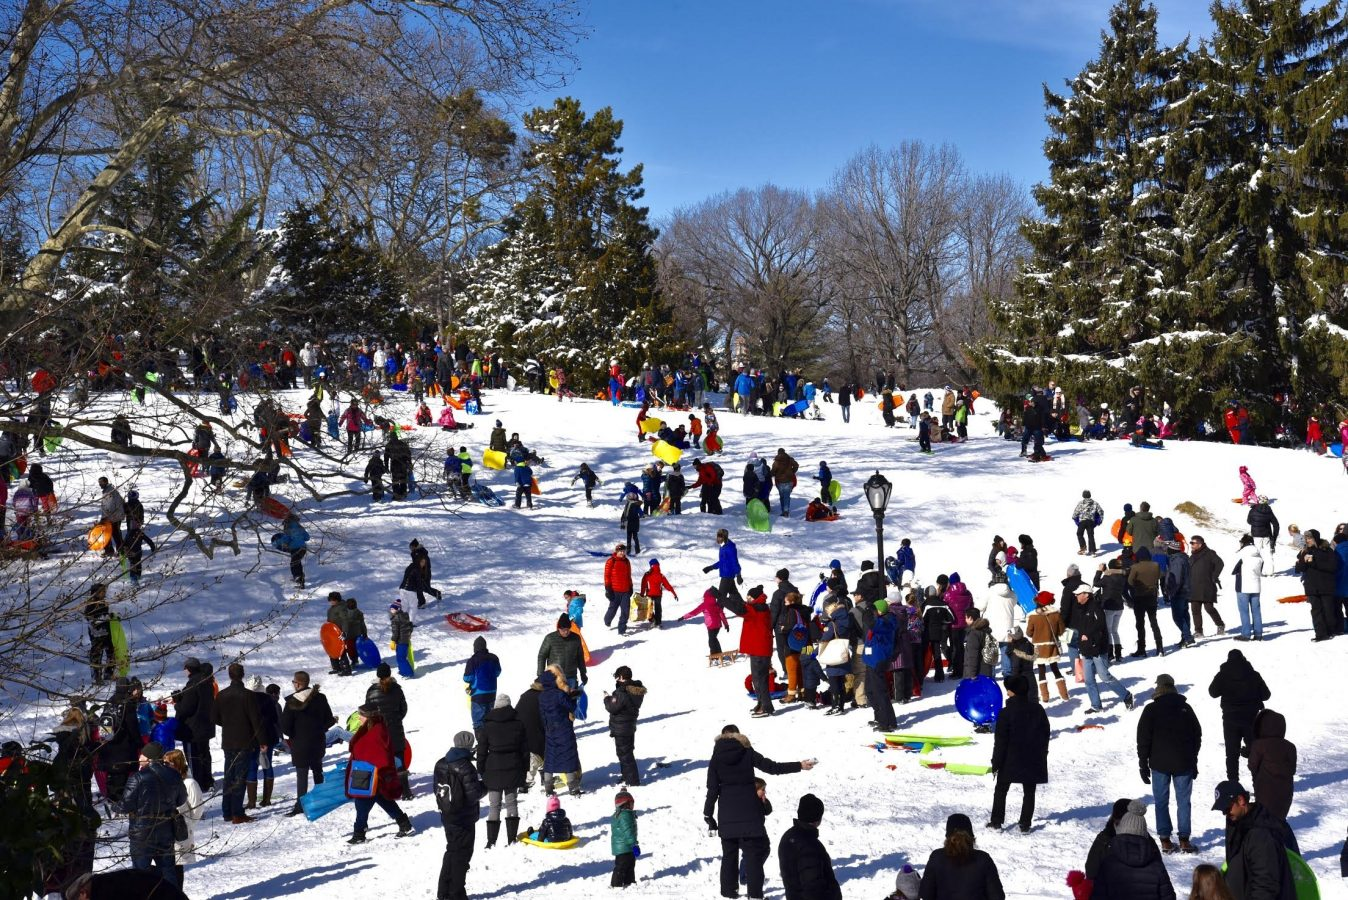 On the 9th day of Christmas… Sledding in the Parks